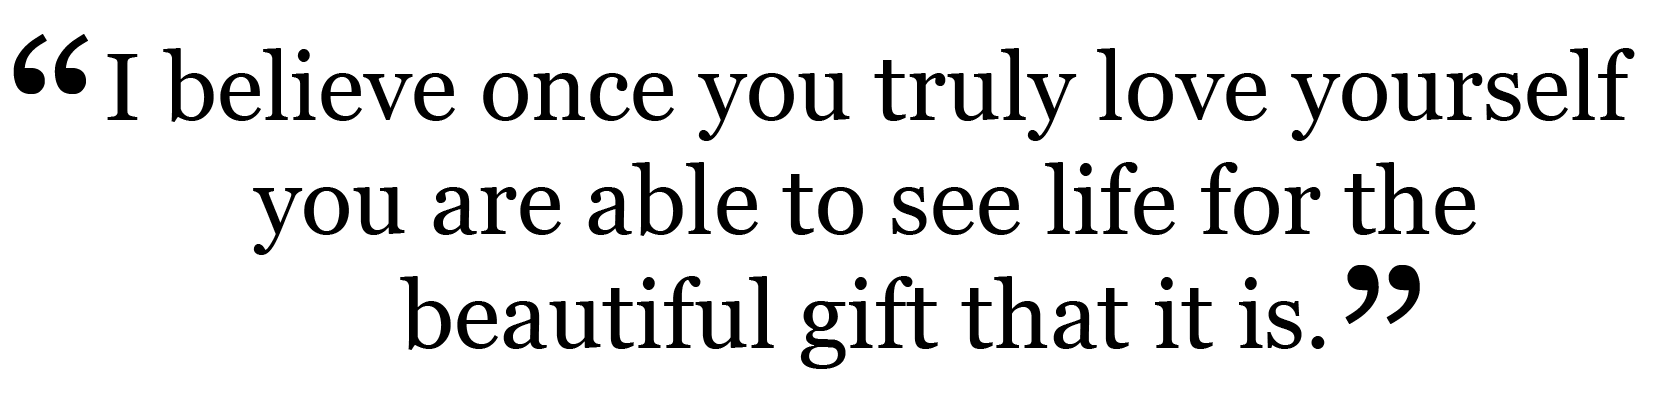 TARA-GOODTYPE-QUOTE-1.png